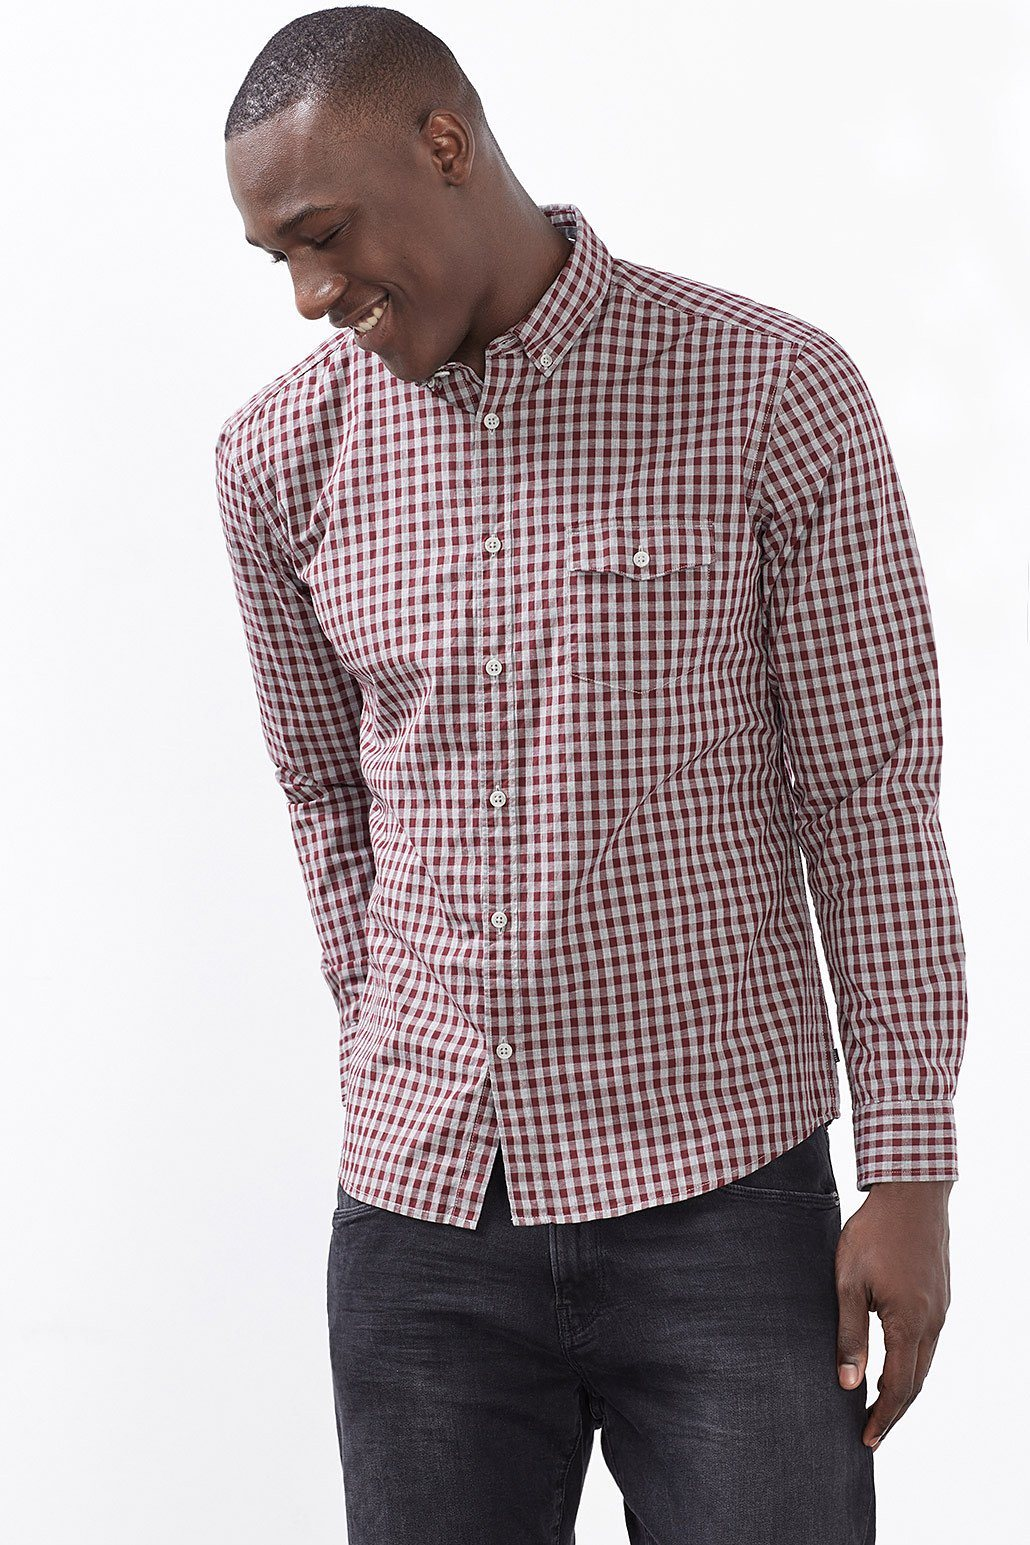 ESPRIT CASUAL Button-Down Karohemd, 100% Baumwolle